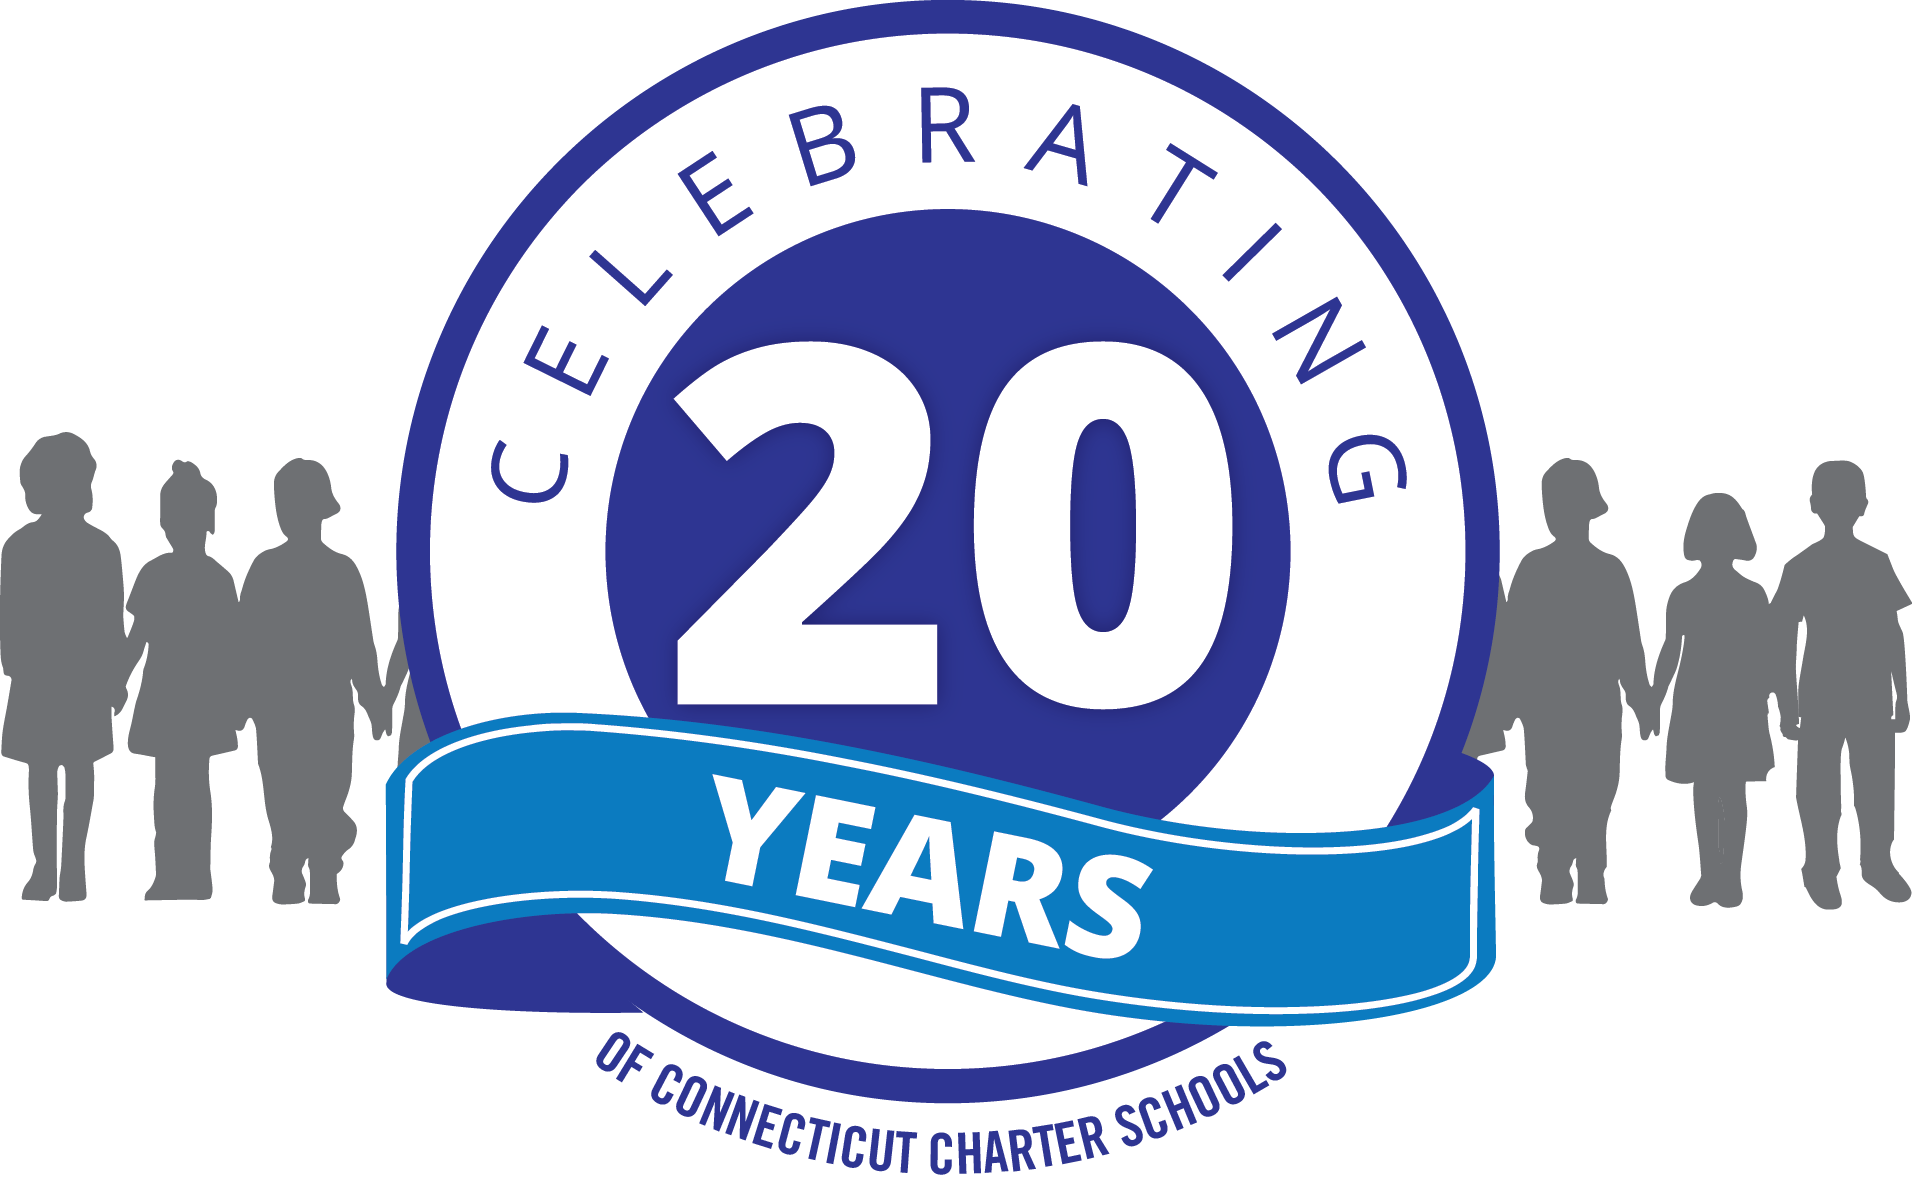 20th Anniversary of CT Charter Schools